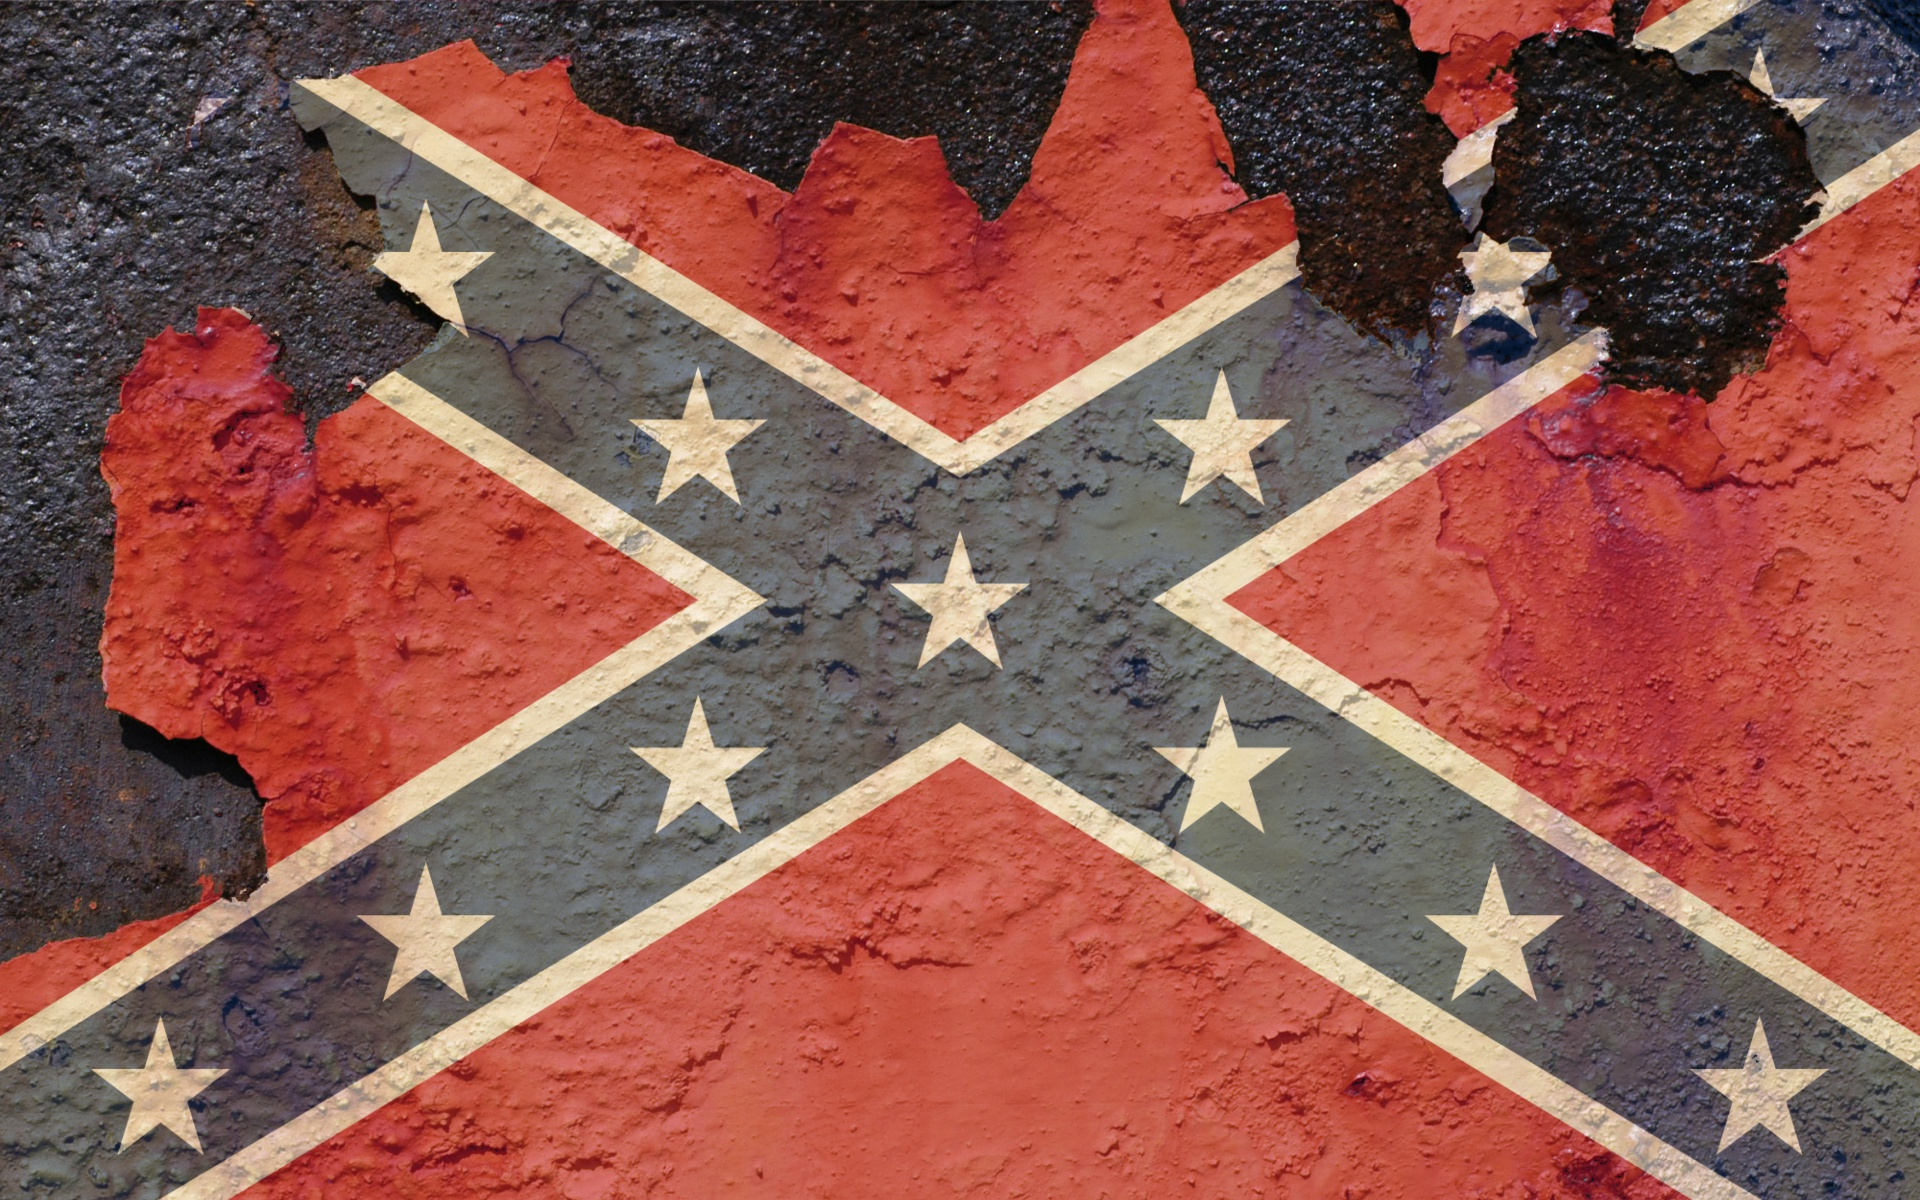 Grunge Flags Wallpaper 1920x1200 Grunge Flags Confederate 1920x1200